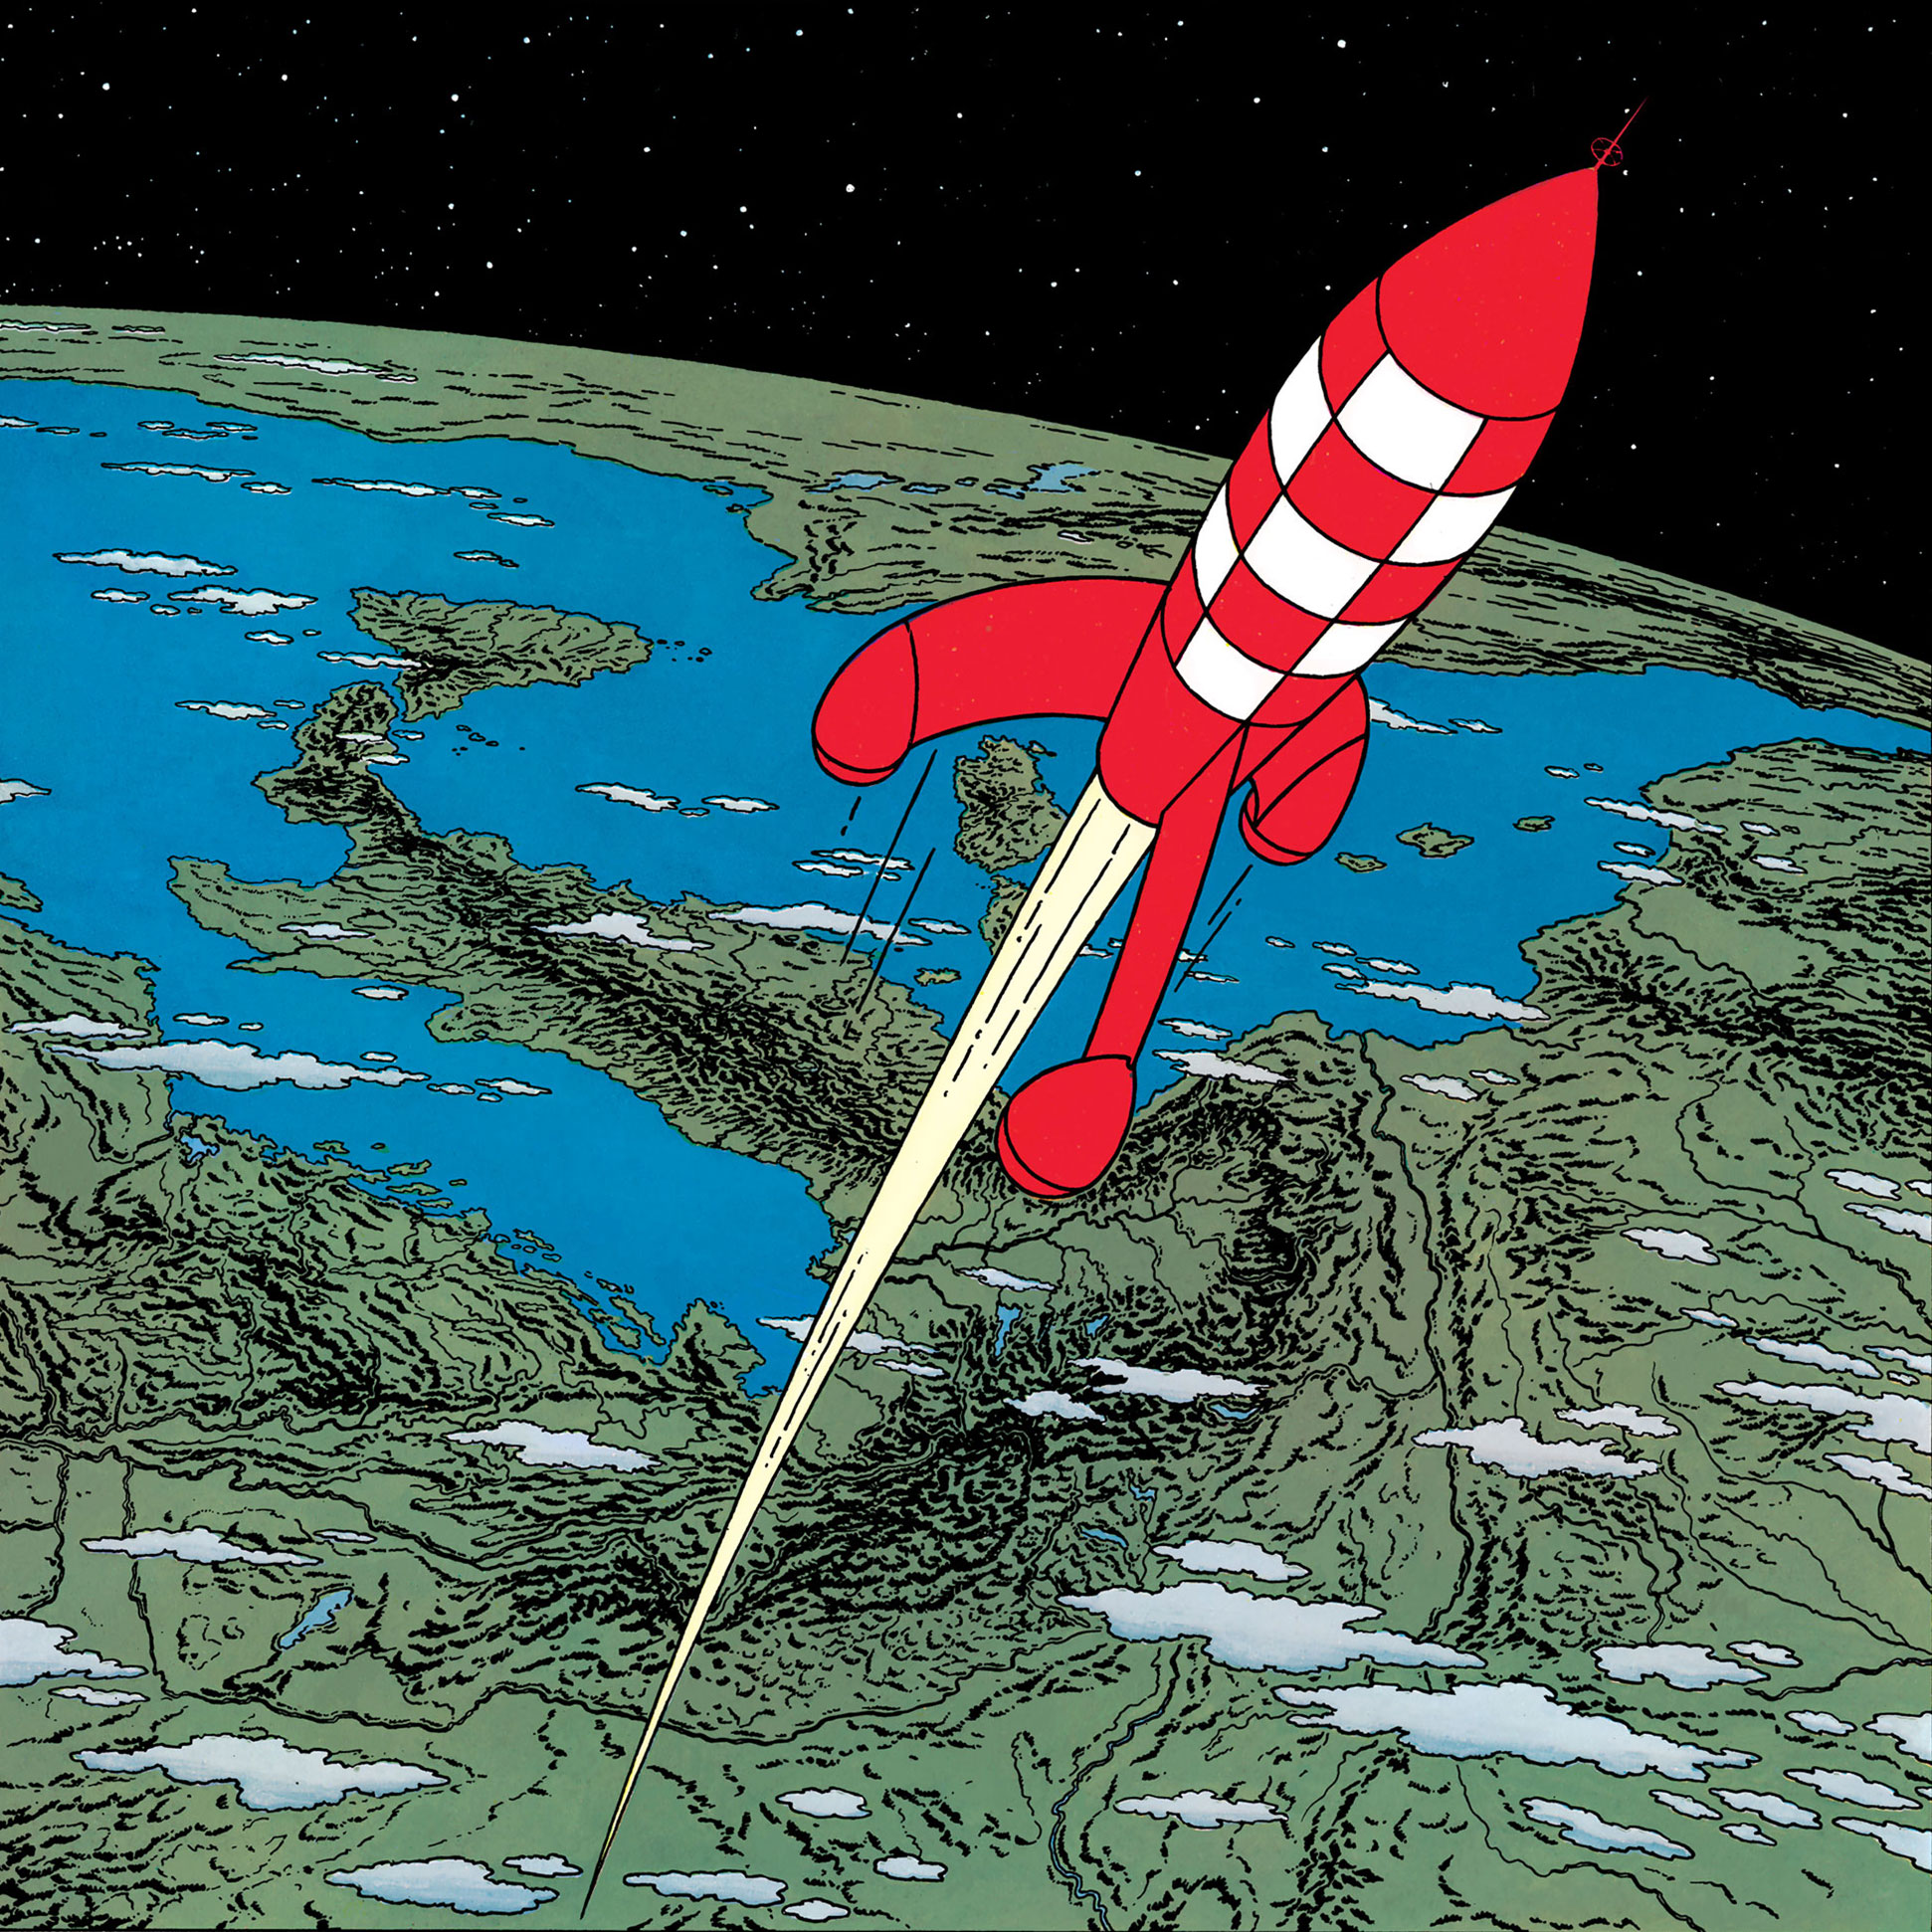 Superpowers, Tintin and outer space